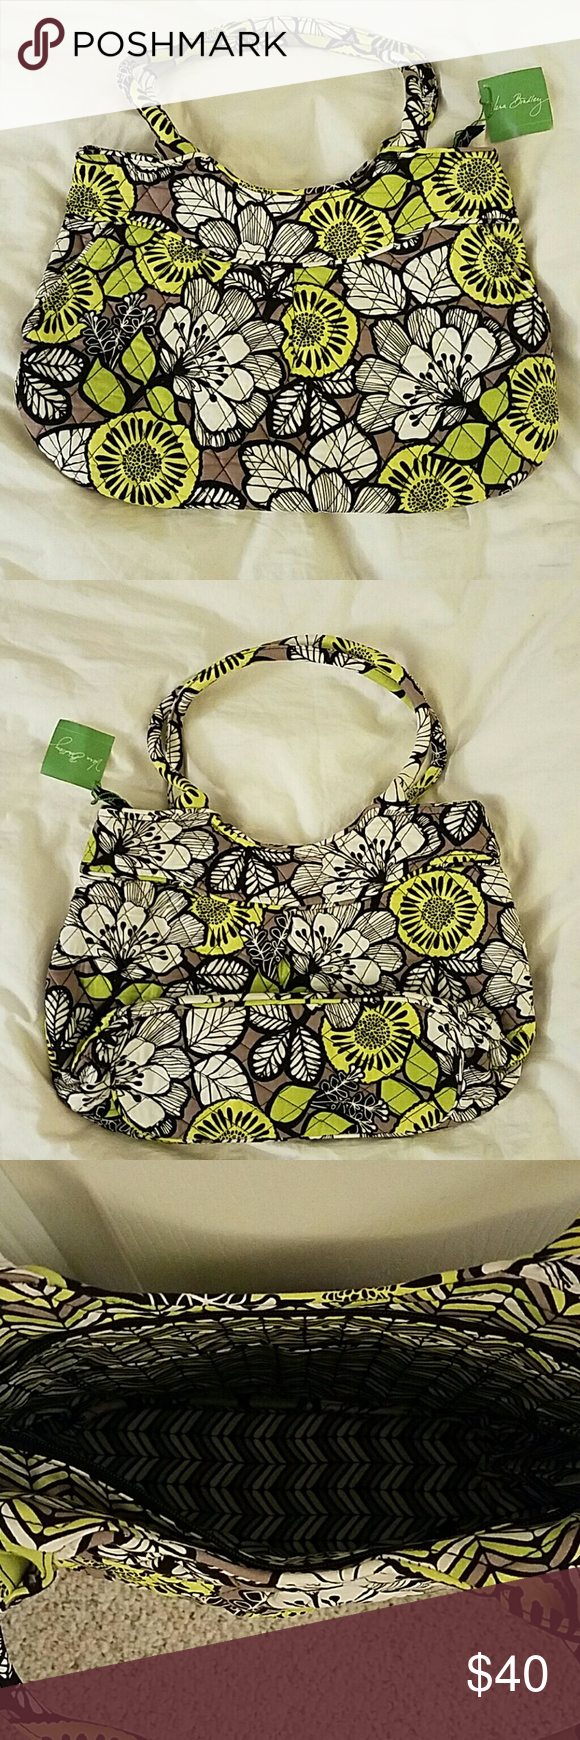 NWT Vera Bradley Pleated Shoulder Bag in Citron ?? NWT VB Pleated Shoulder Bag in Citron ??. Great color for the coming spring. Green intermixed with brown and black among the many white flowers on this bag ?? Vera Bradley Bags Shoulder Bags